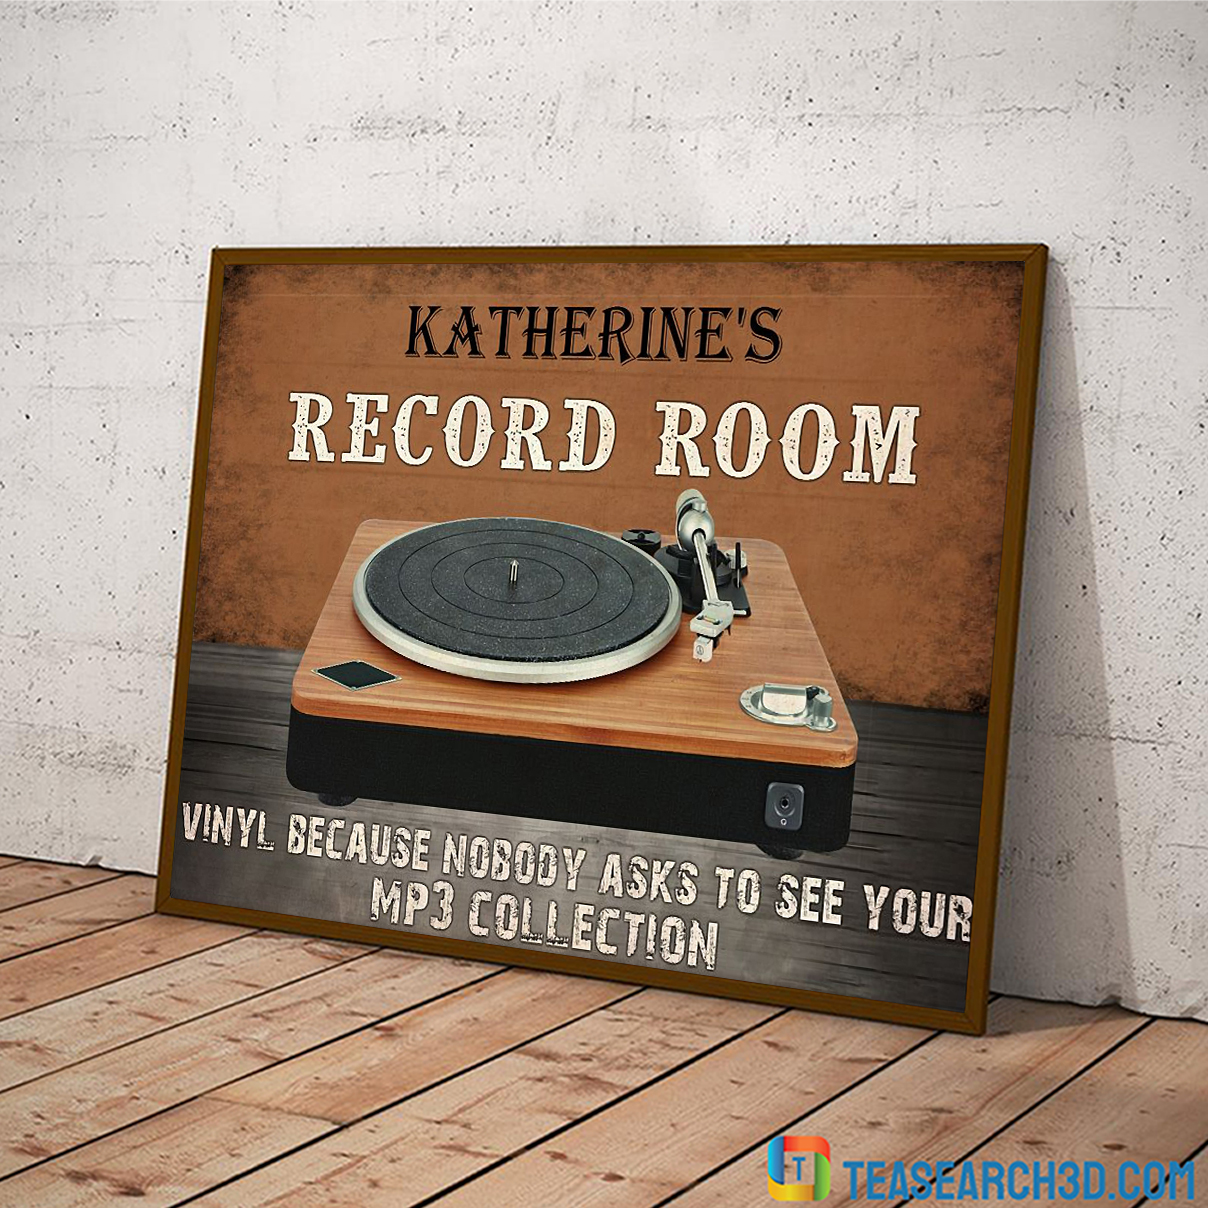 Personalized custom name record room vinyl because nobody asks to see poster A2